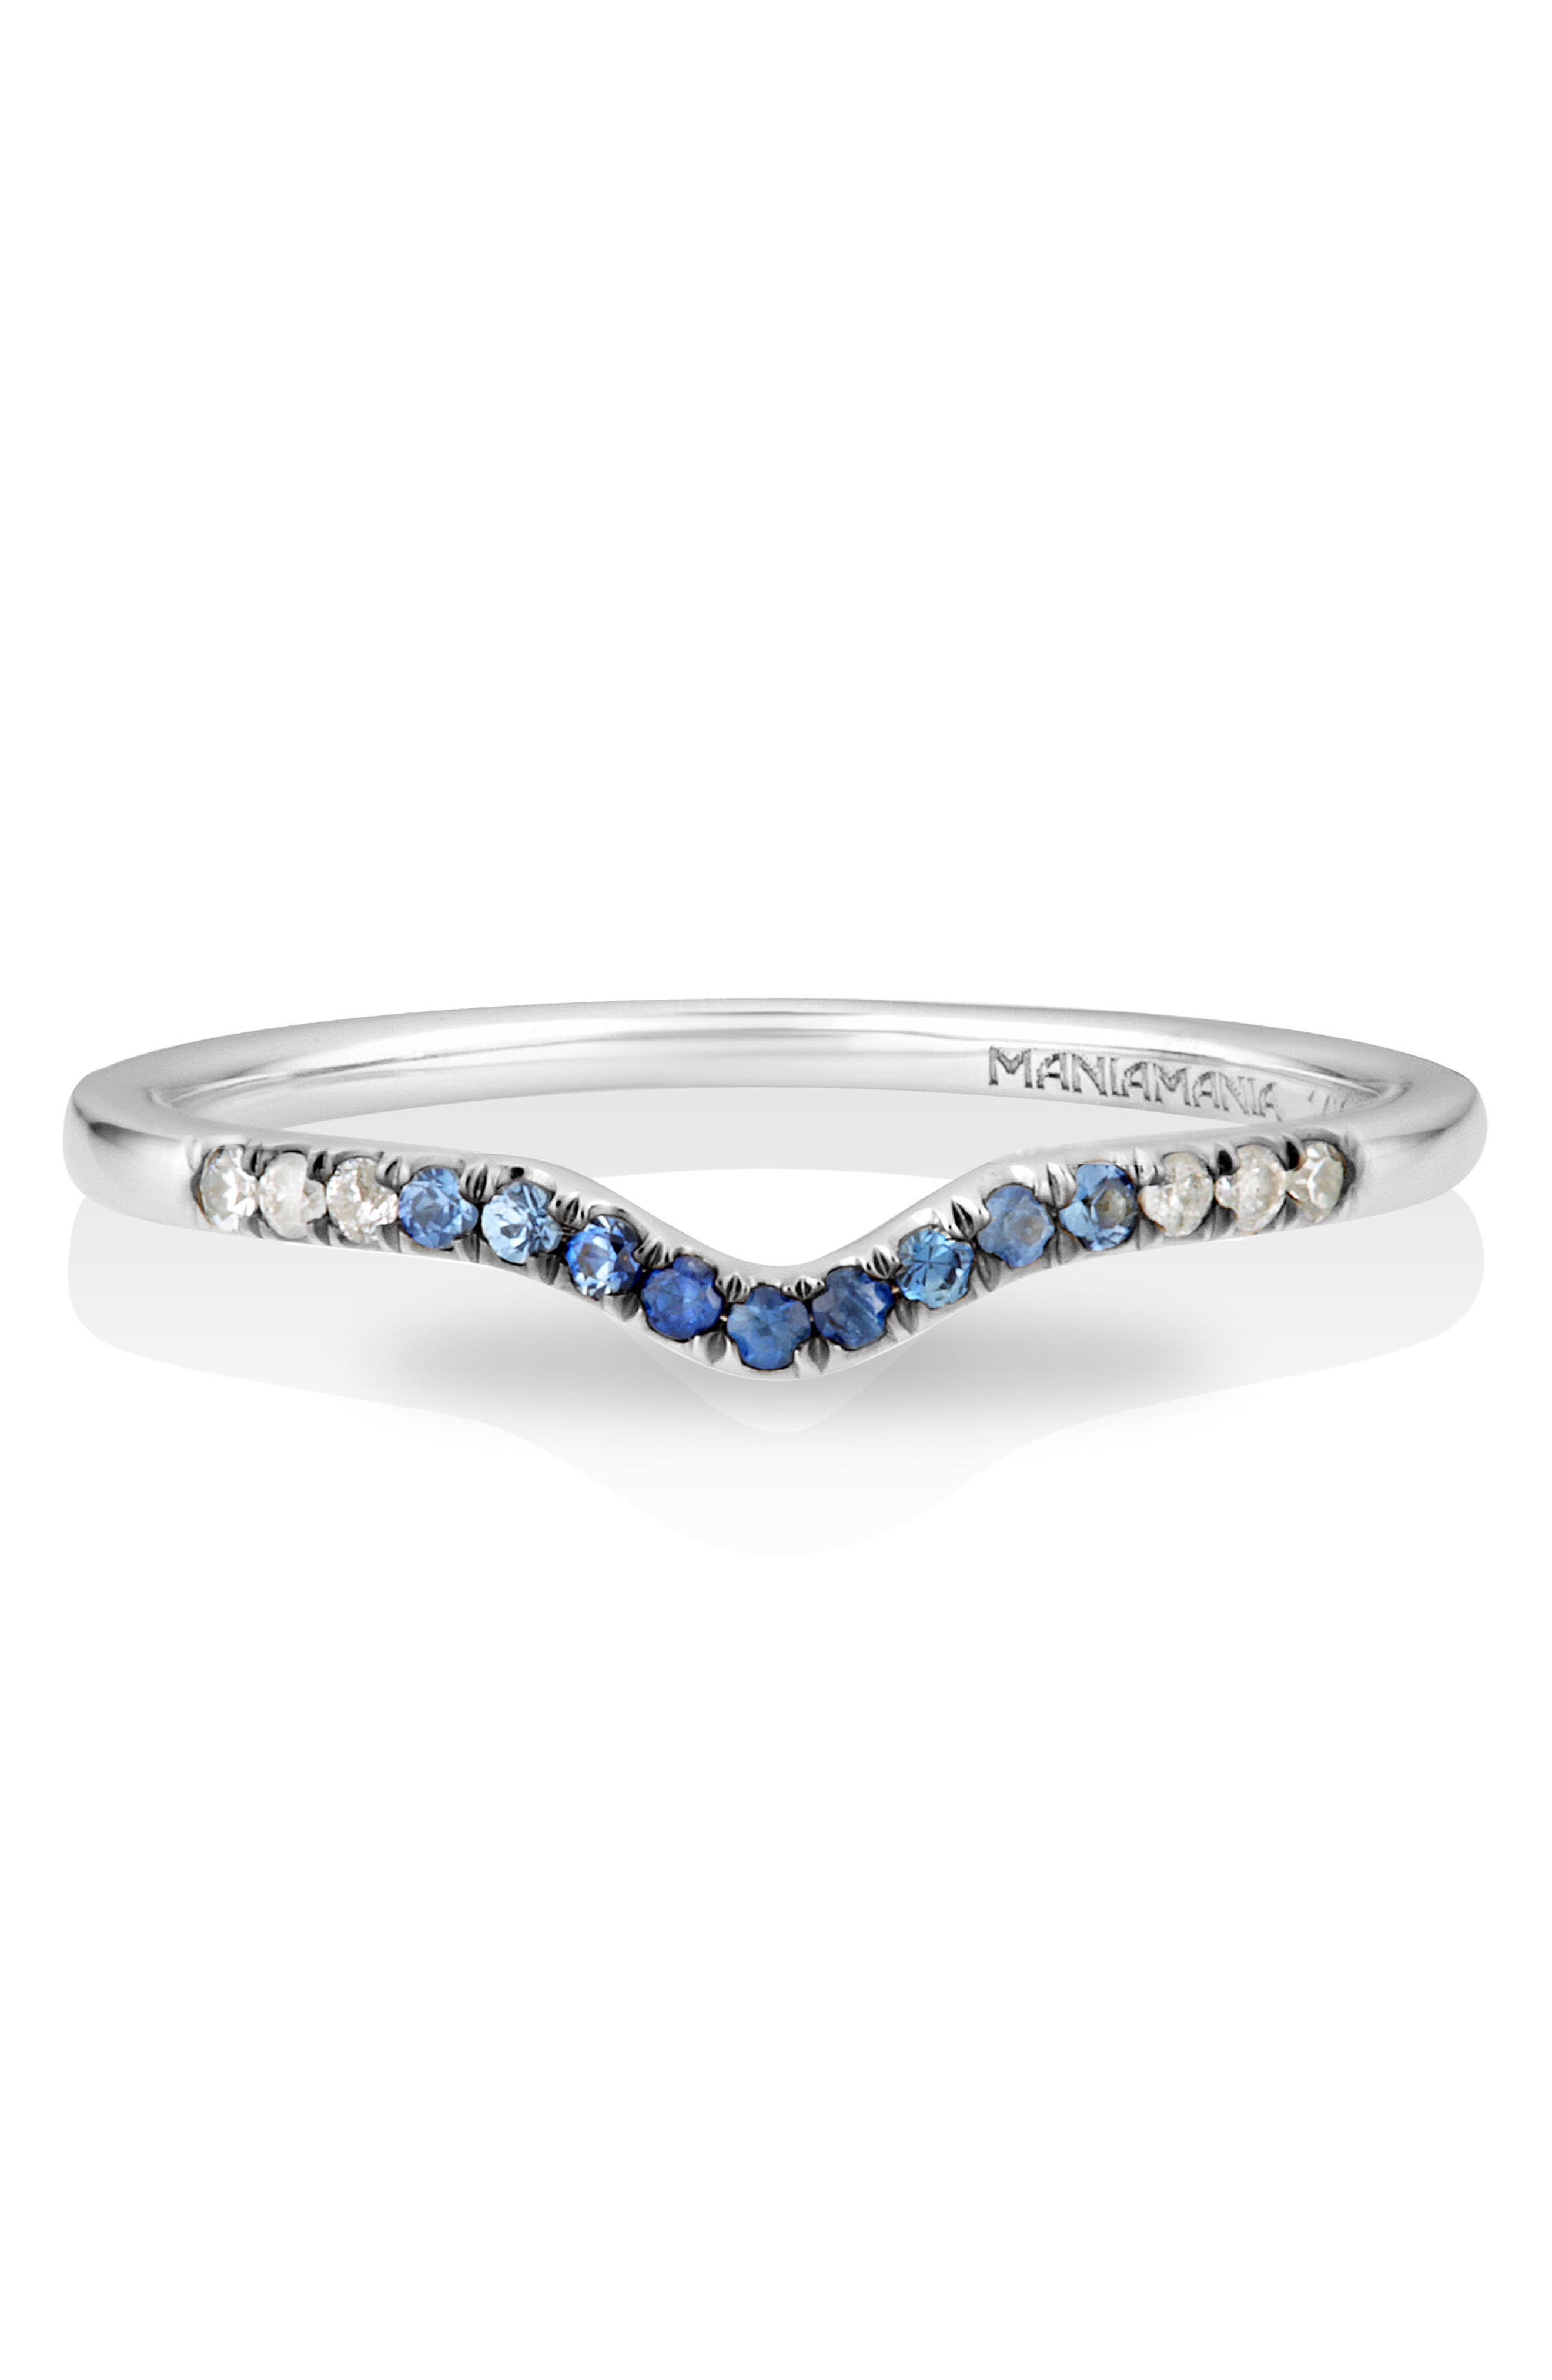 MANIAMANIA,                             Unity Gradient Sapphire Band Ring,                             Alternate thumbnail 2, color,                             BLUE SAPPHIRE/ WHITE GOLD